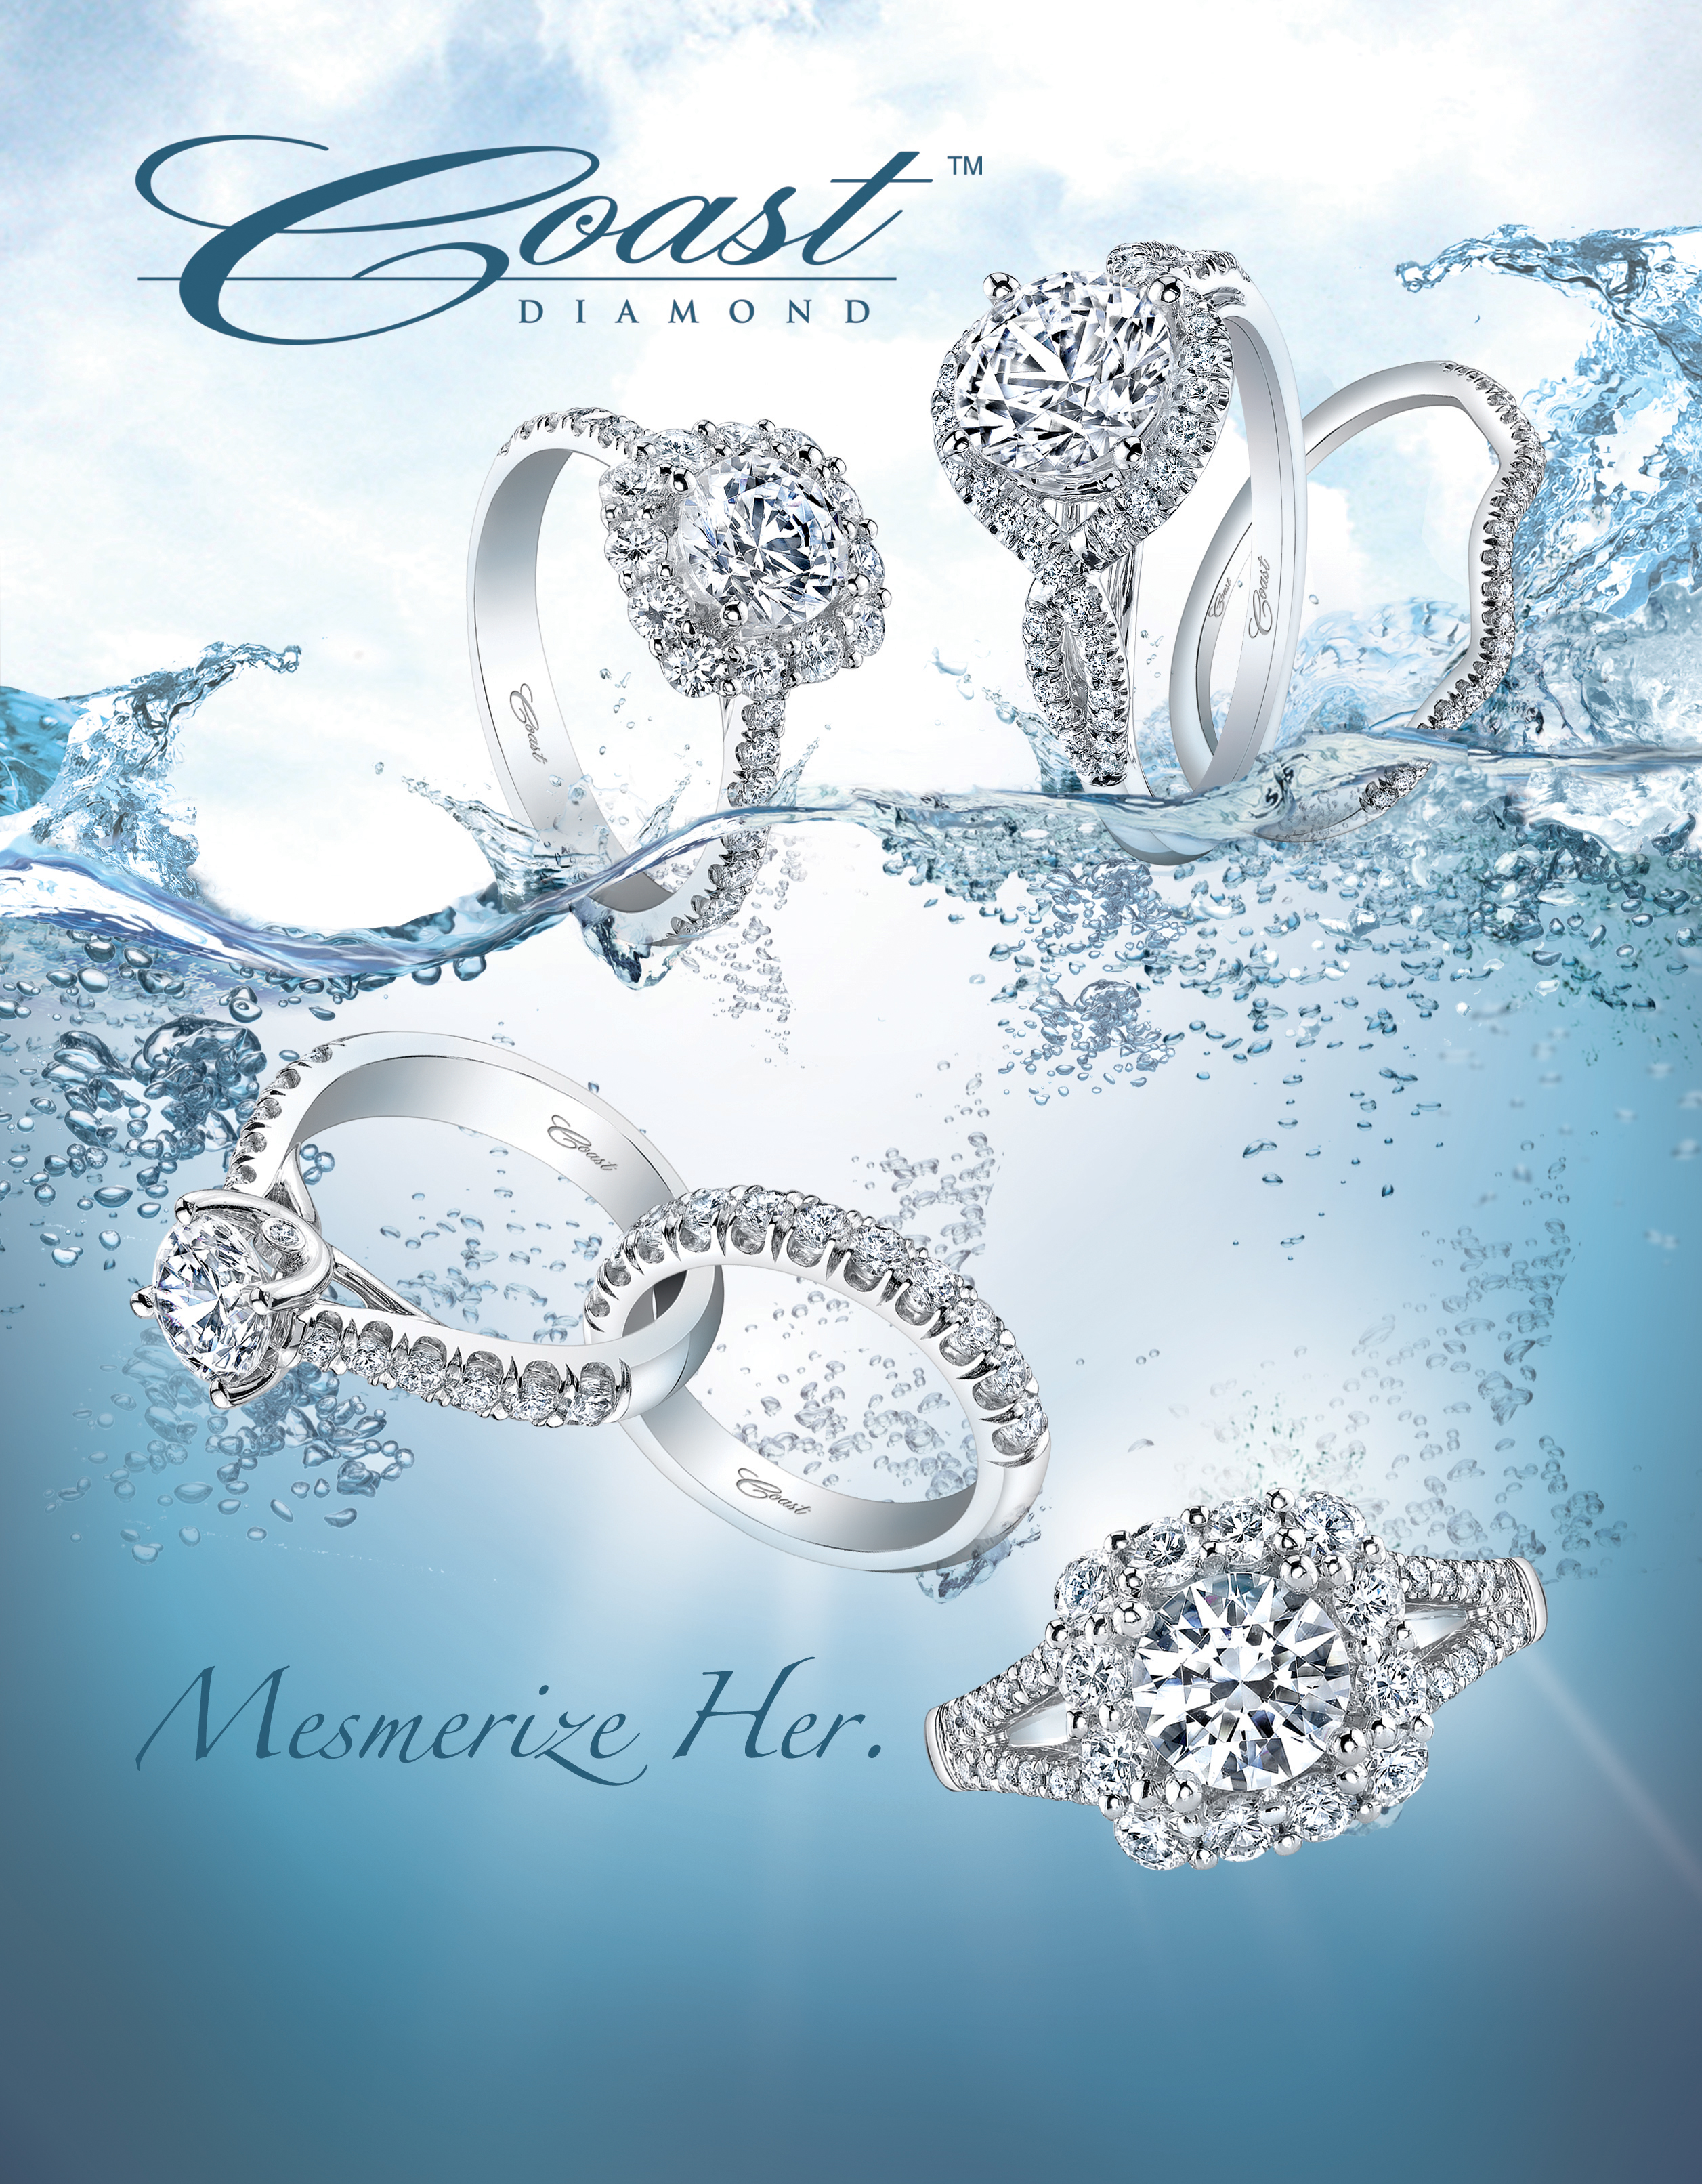 magazine ad, print ad, water, splashes, blue, beautiful, ring ad, engagement ring ad, print ad, jewelry, jewelry ad, creative jewelry ad